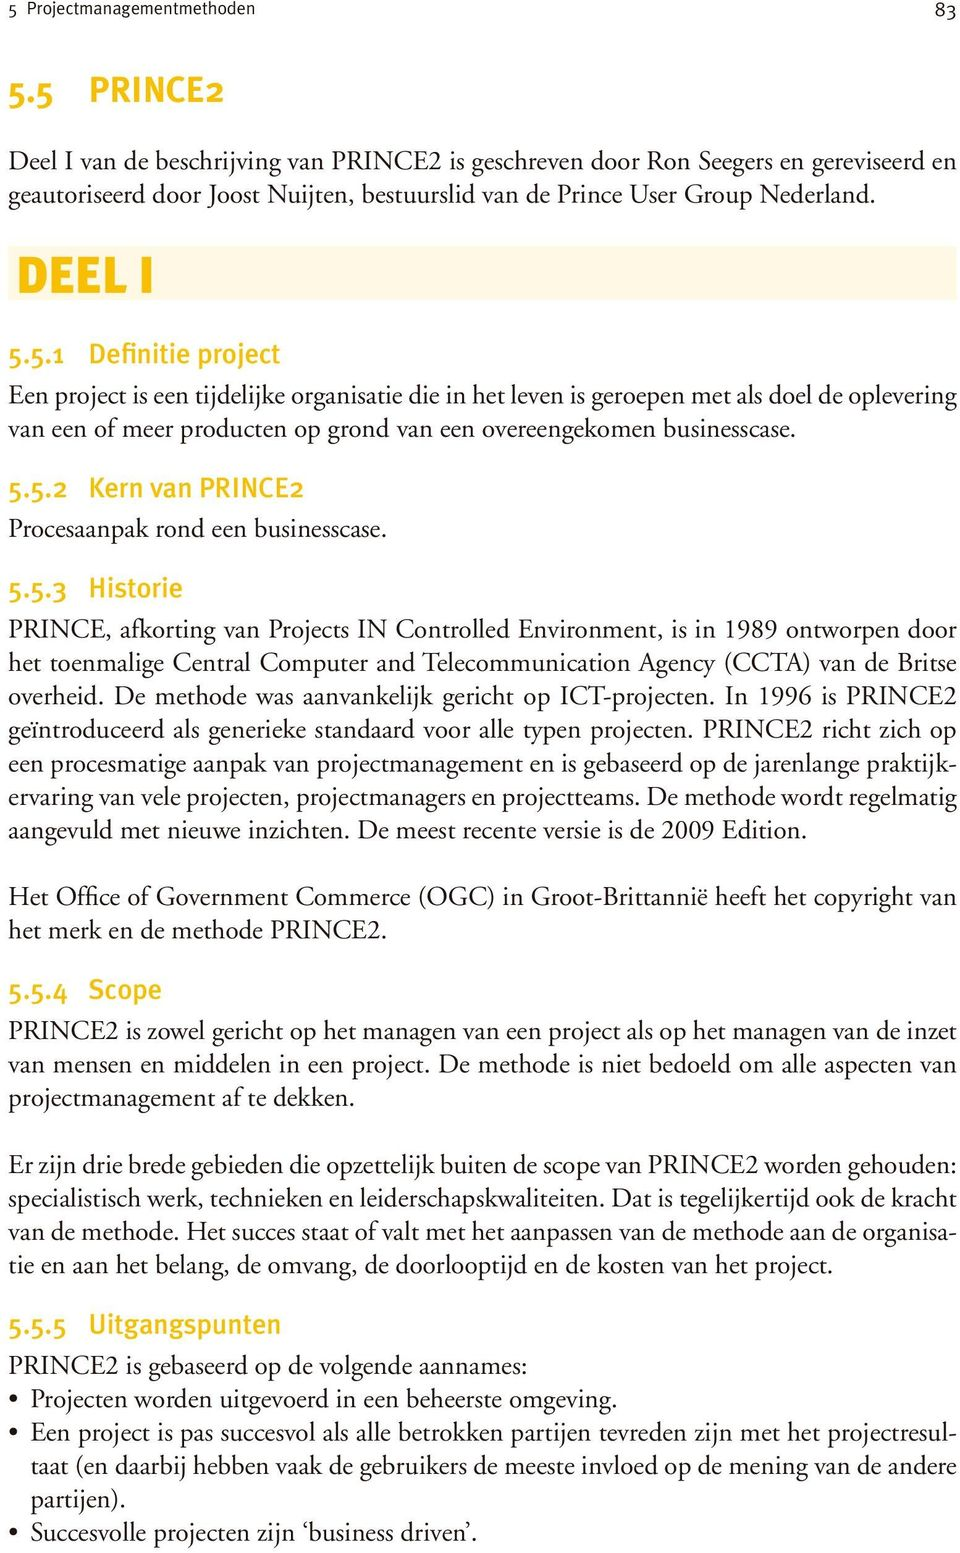 5.5.2 Kern van PRINCE2 Procesaanpak rond een businesscase. 5.5.3 Historie PRINCE, afkorting van Projects IN Controlled Environment, is in 1989 ontworpen door het toenmalige Central Computer and Telecommunication Agency (CCTA) van de Britse overheid.